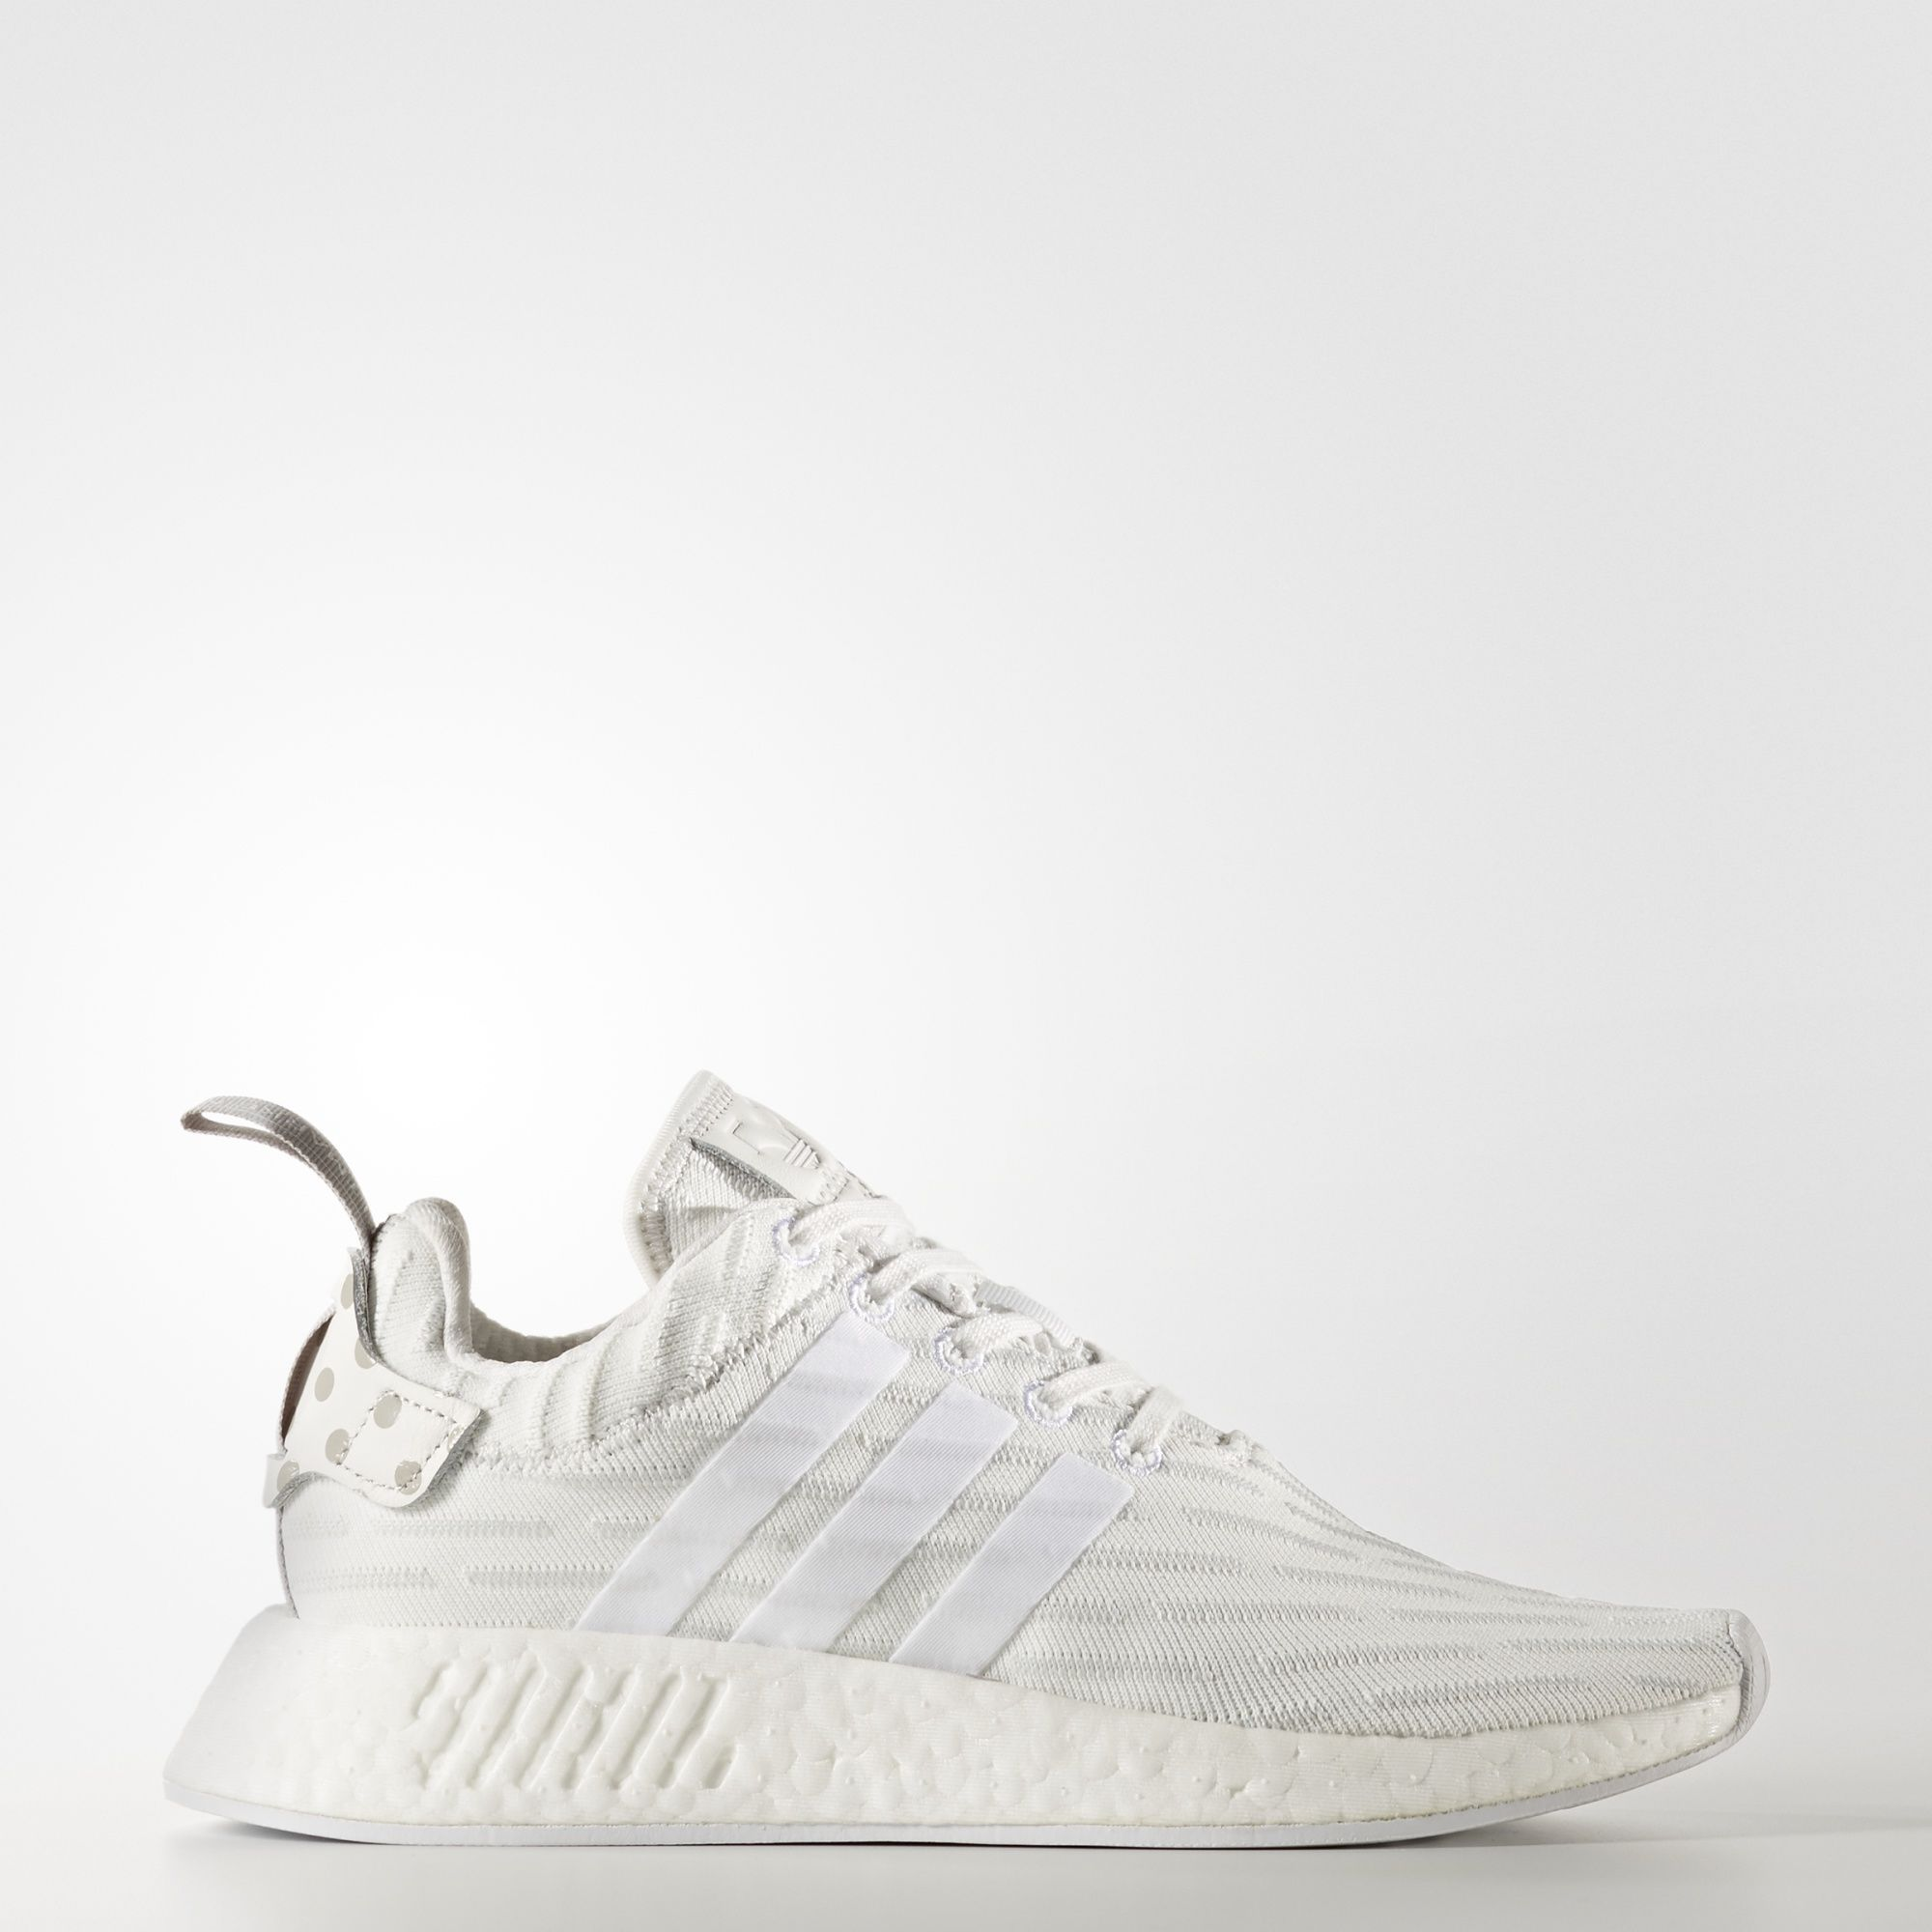 adidas NMD_R2 Primeknit Shoes - Grey | adidas US